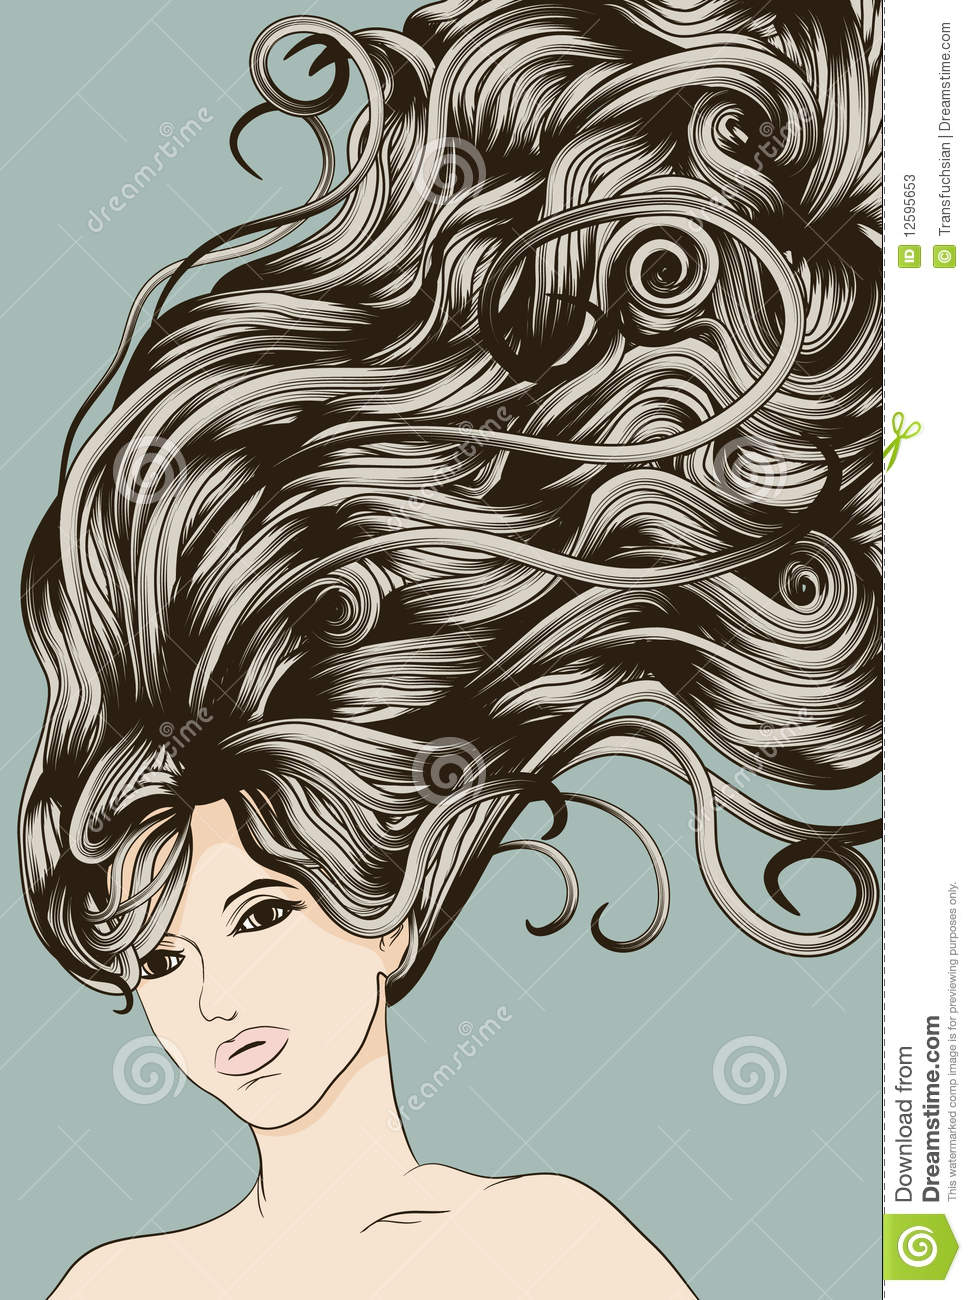 Woman S Face With Long Detailed Flowing Hair Stock Vector ...